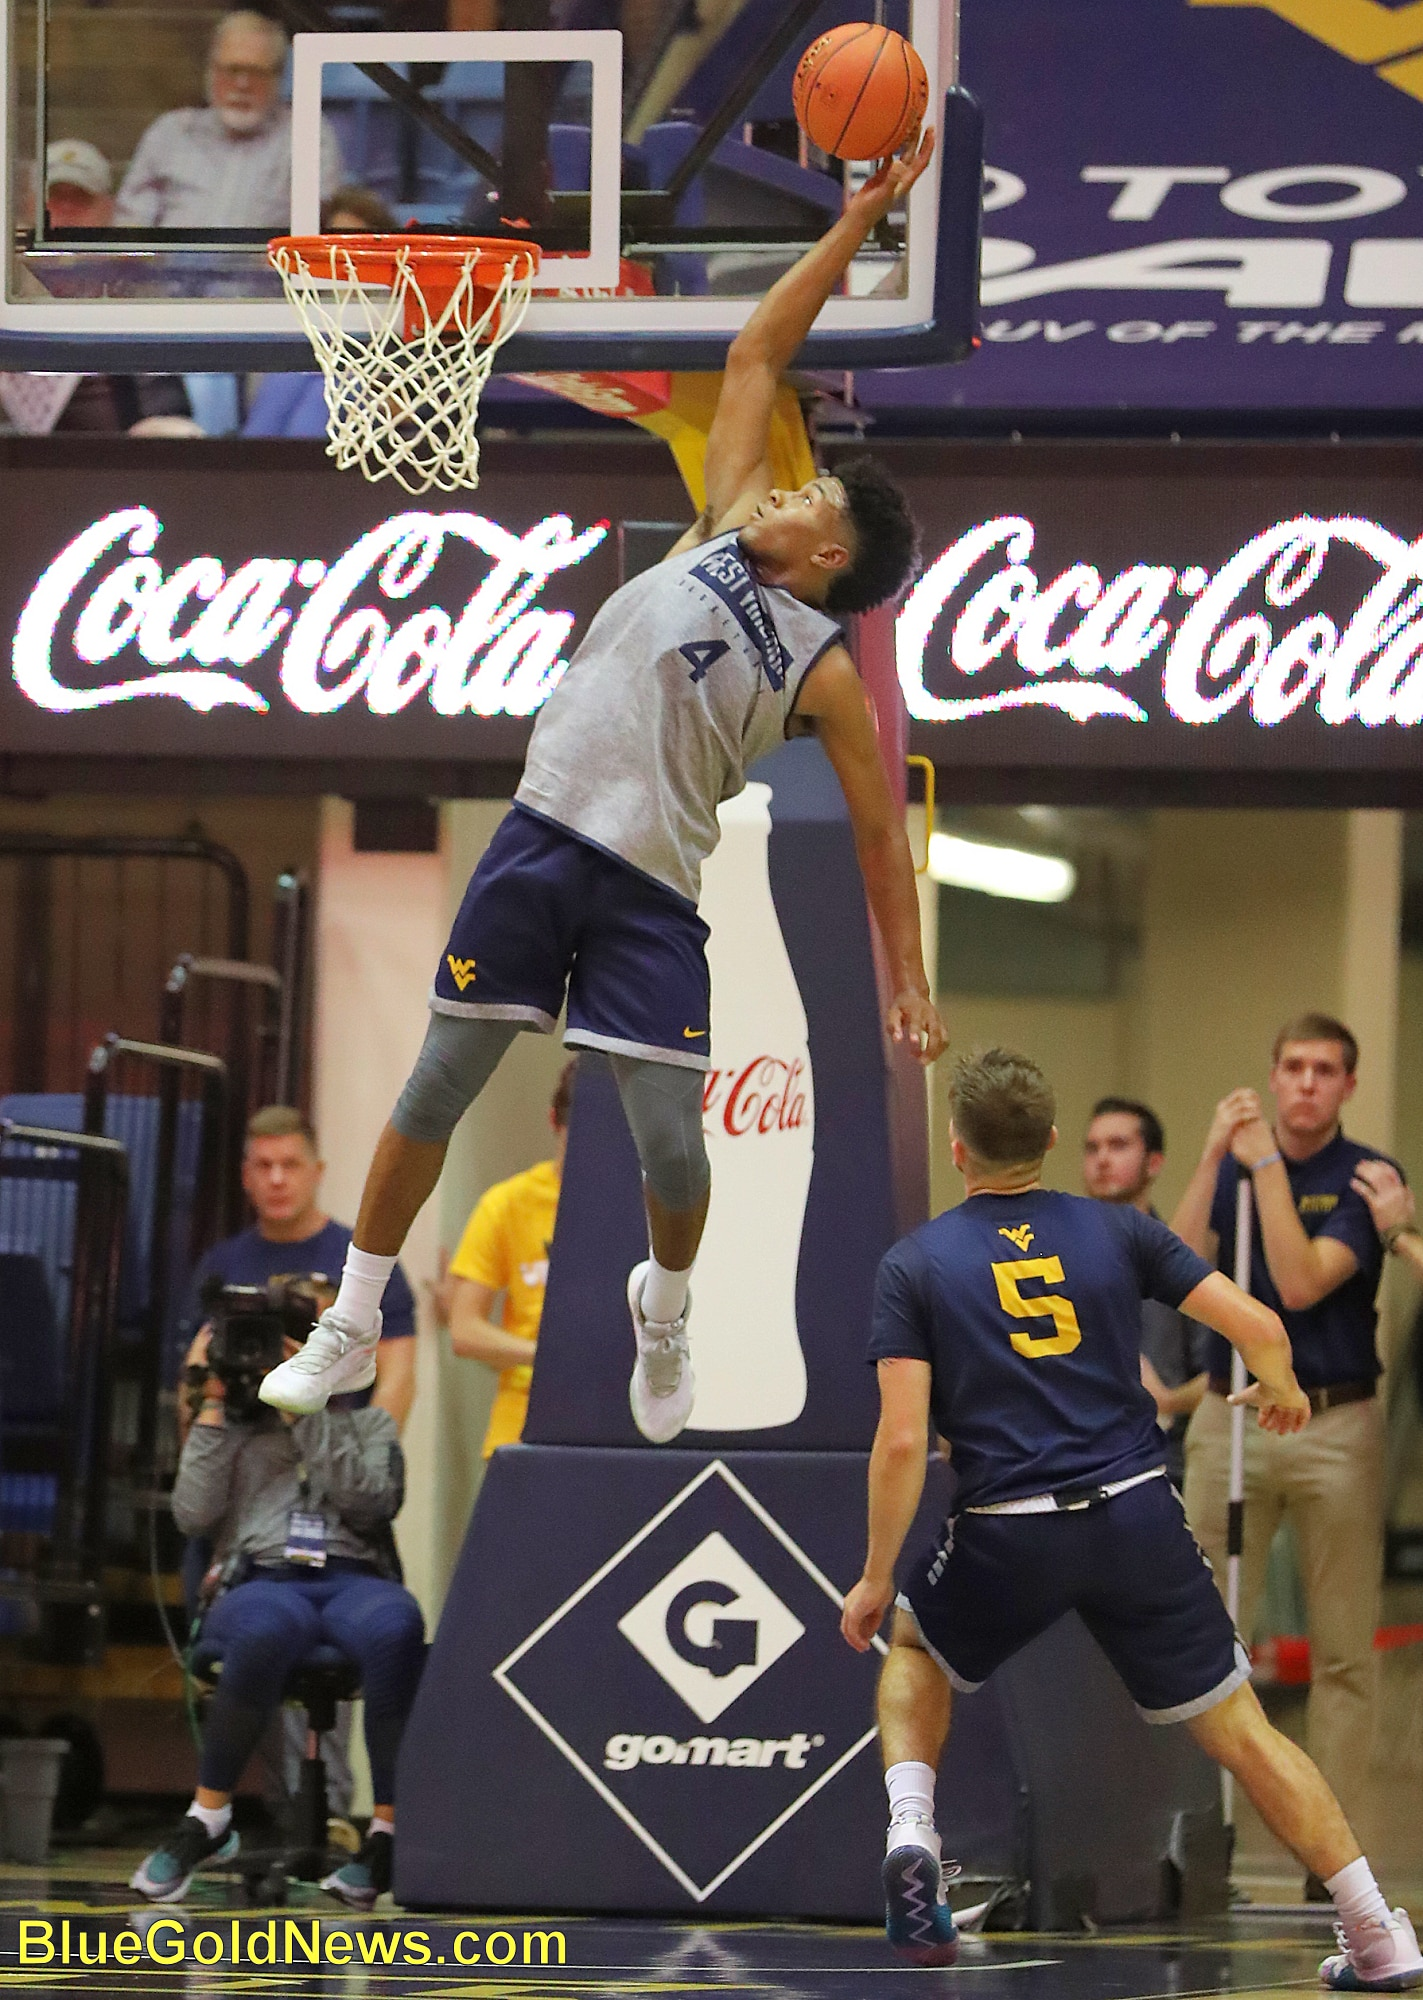 West Virginia guard Miles McBride (4) elevates for an alley-oop pass